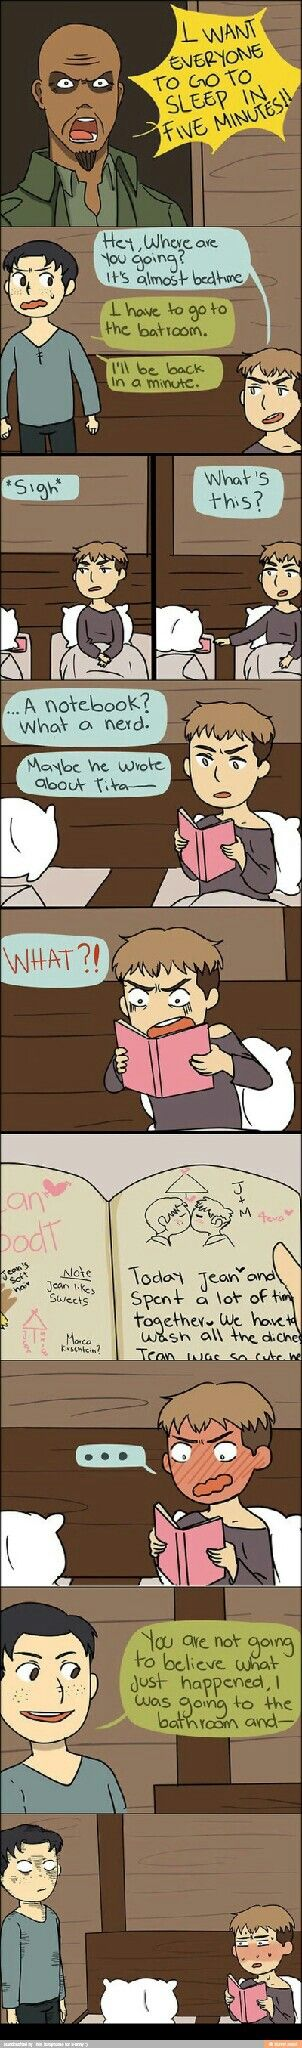 Attack on Titan ~~ Marco leaves his diary where Jean can find it. Are you so sure that was an accident? Hmmm...